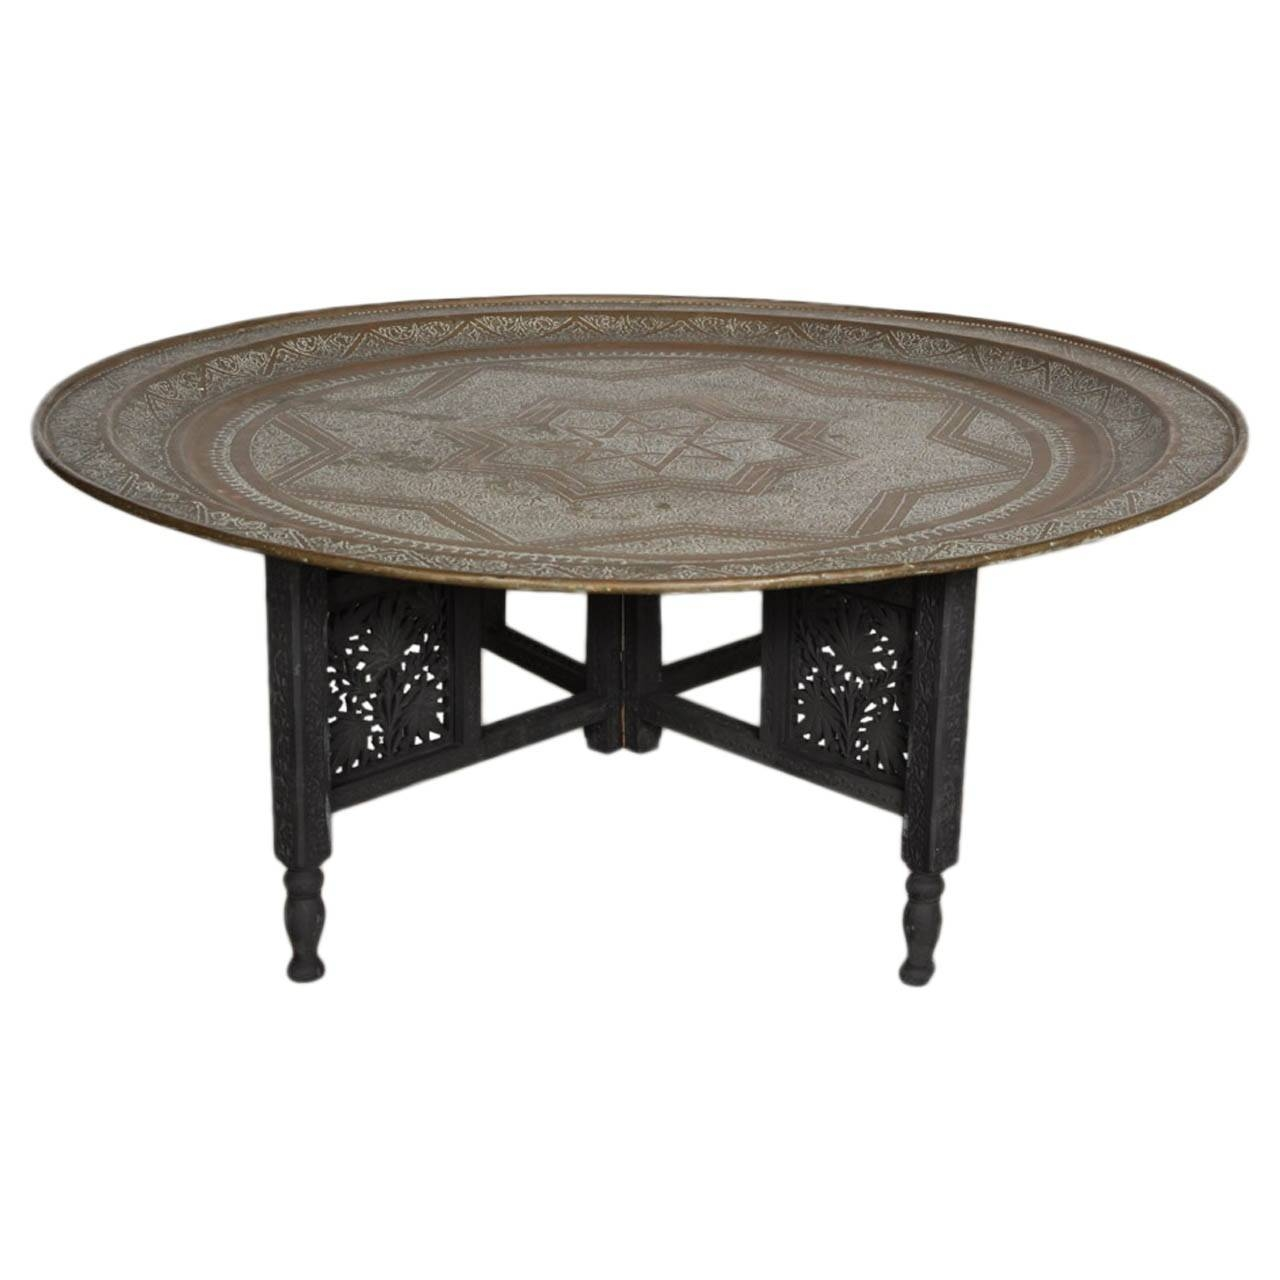 Amusing Round Tray Coffee Table Metal – Round Tray Coffee Table Uk in Round Coffee Table Trays (Image 3 of 30)